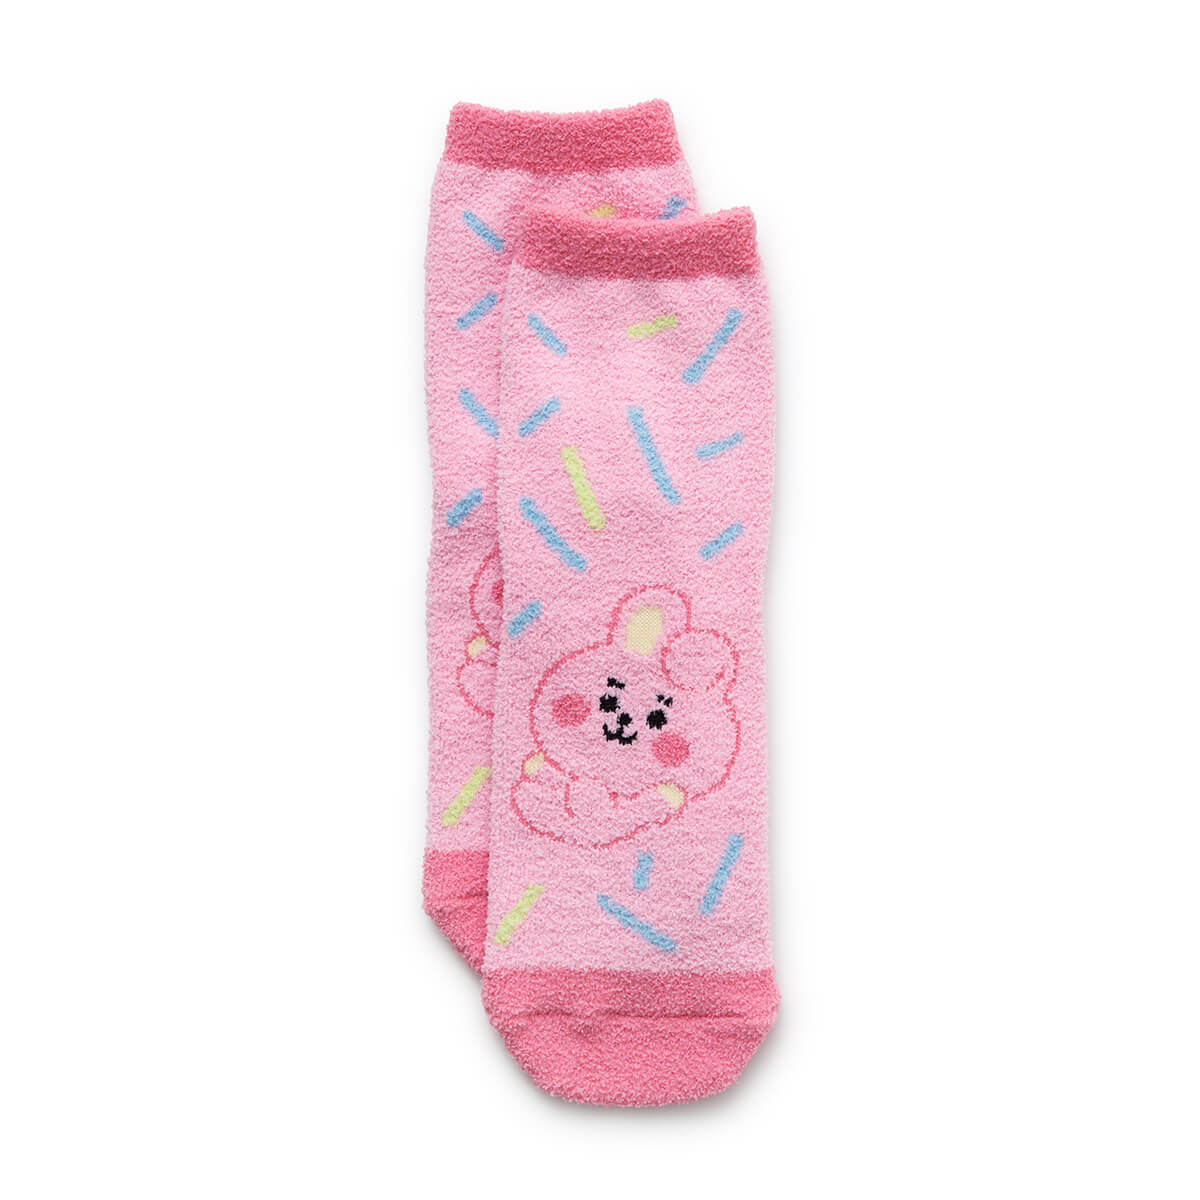 BT21 COOKY Baby Adult Sleep Socks